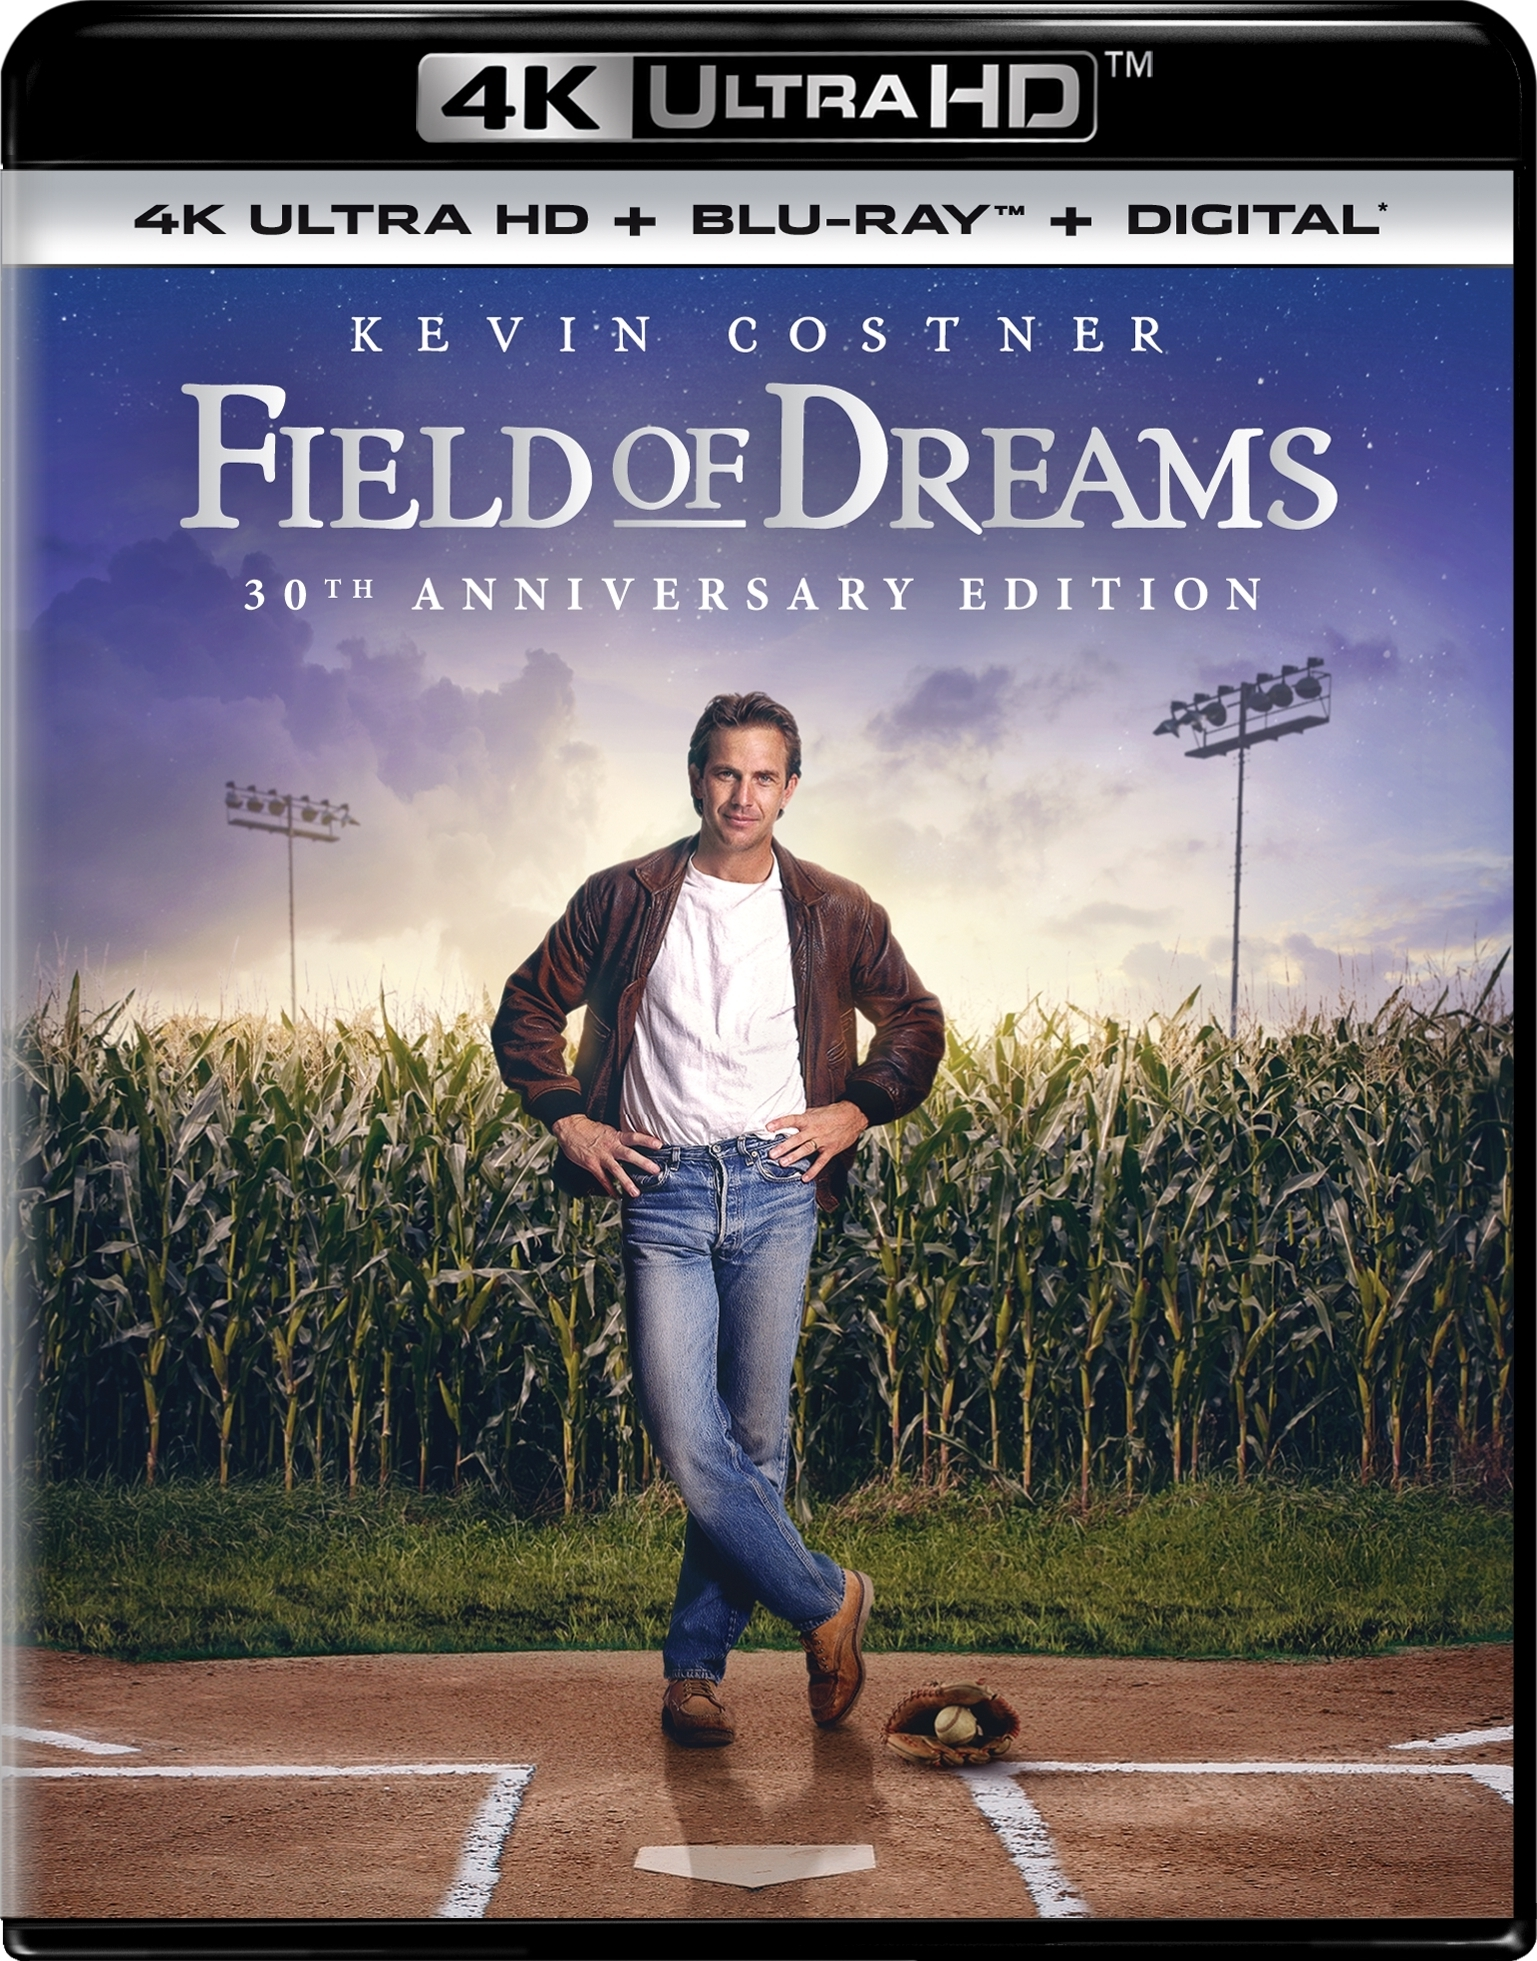 Field of Dreams (30th Anniversary Edition)(4K Ultra HD Blu-ray)(Pre-order / May 14)